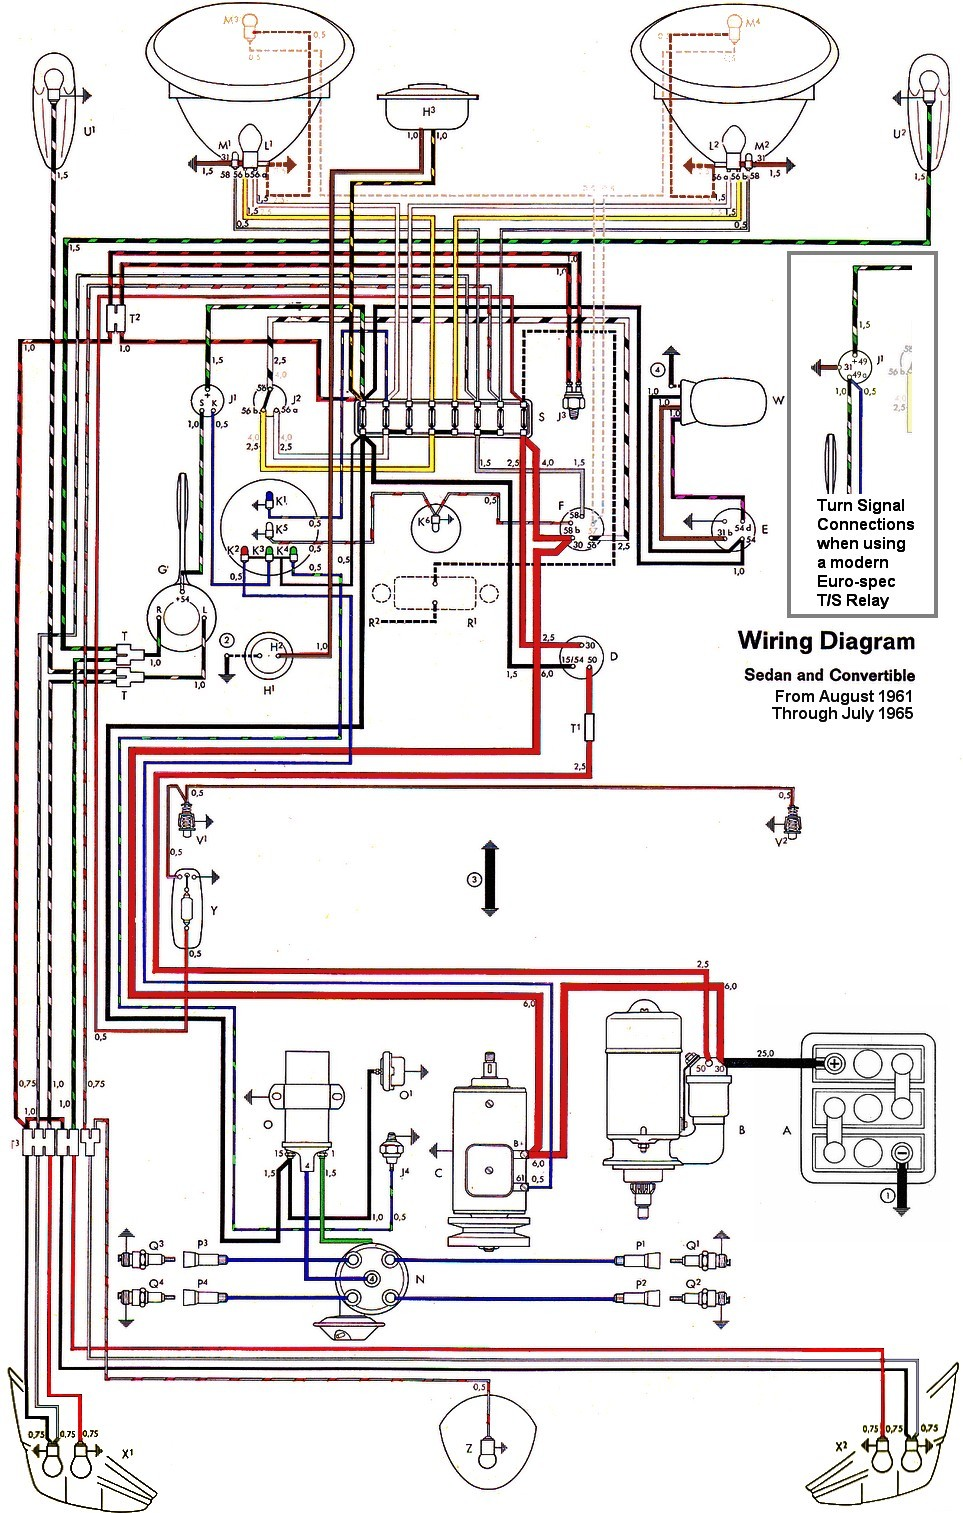 bug_62 65withinset 1999 vw beetle wiring diagram efcaviation com 1999 vw beetle wiring diagram at reclaimingppi.co